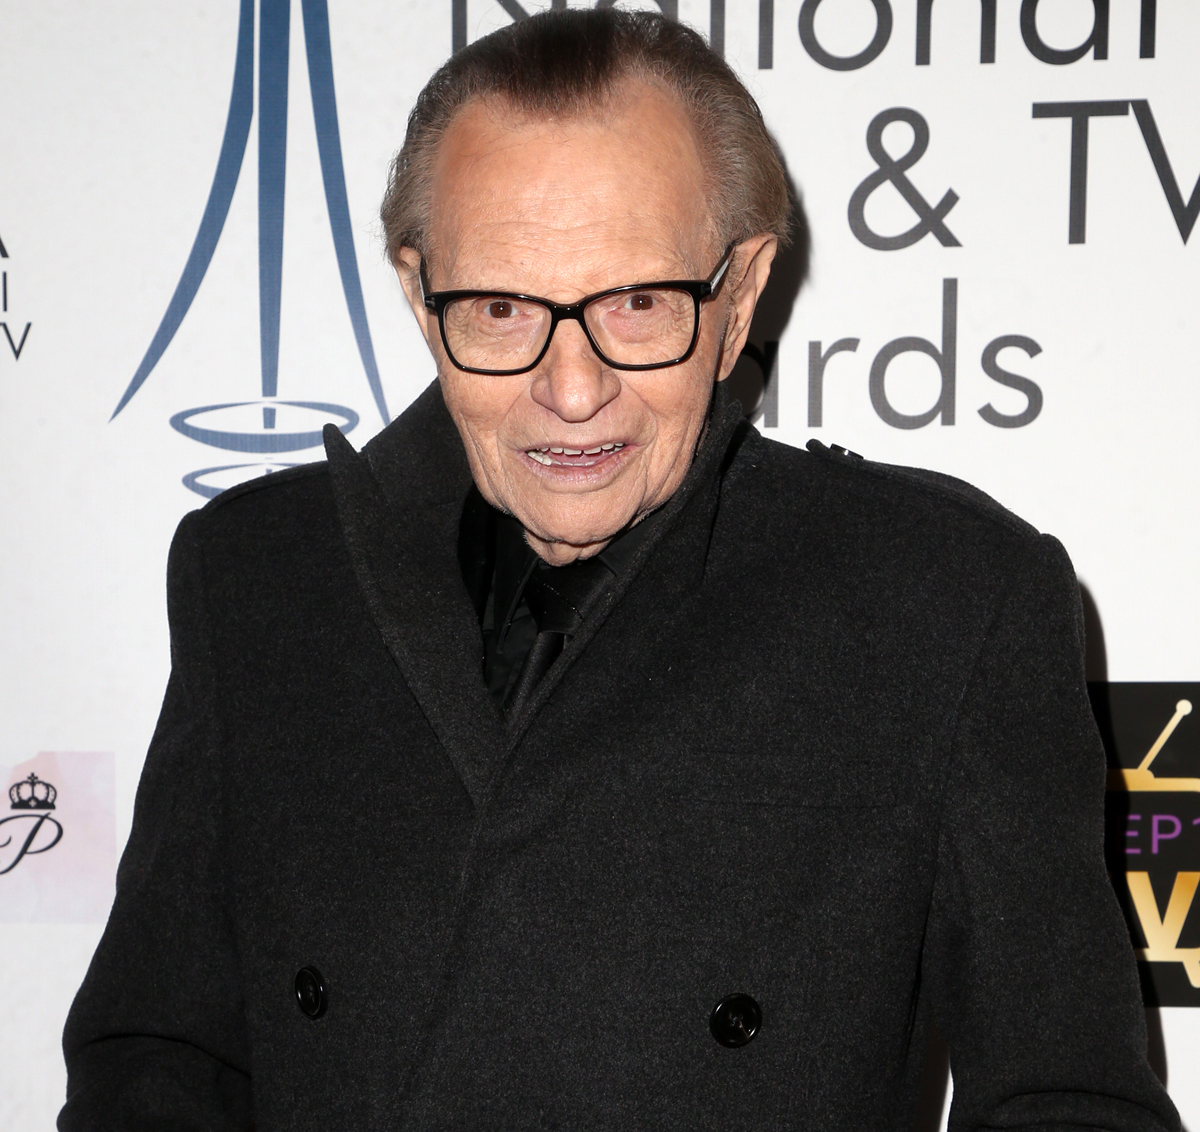 Larry King Dead At 87: Legendary Journalist & TV Host Passes Away In Los Angeles